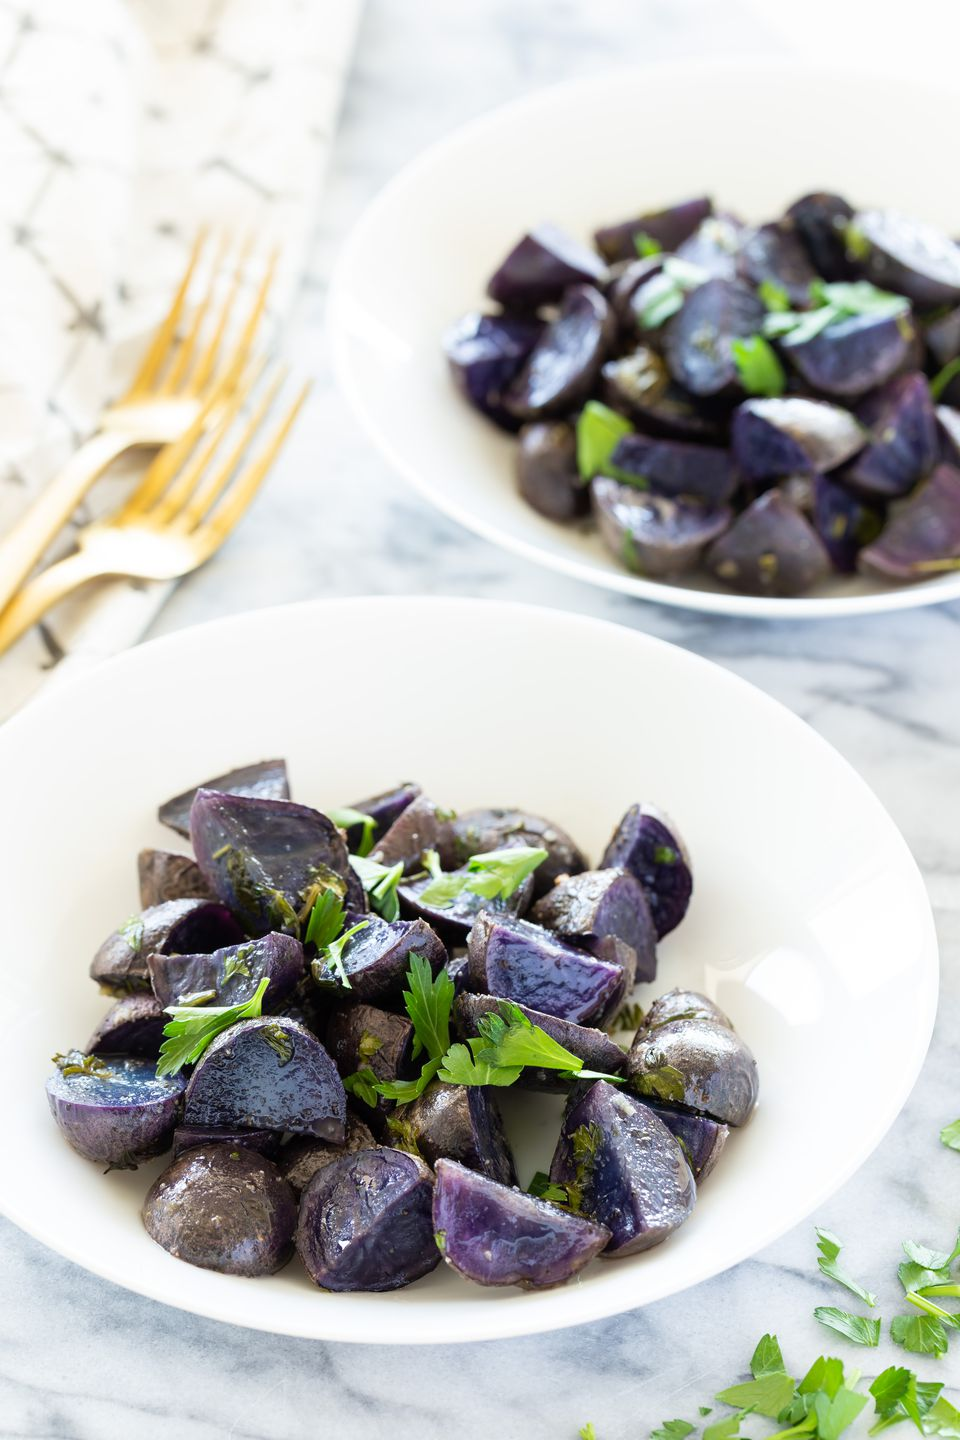 Roasted purple potatoes